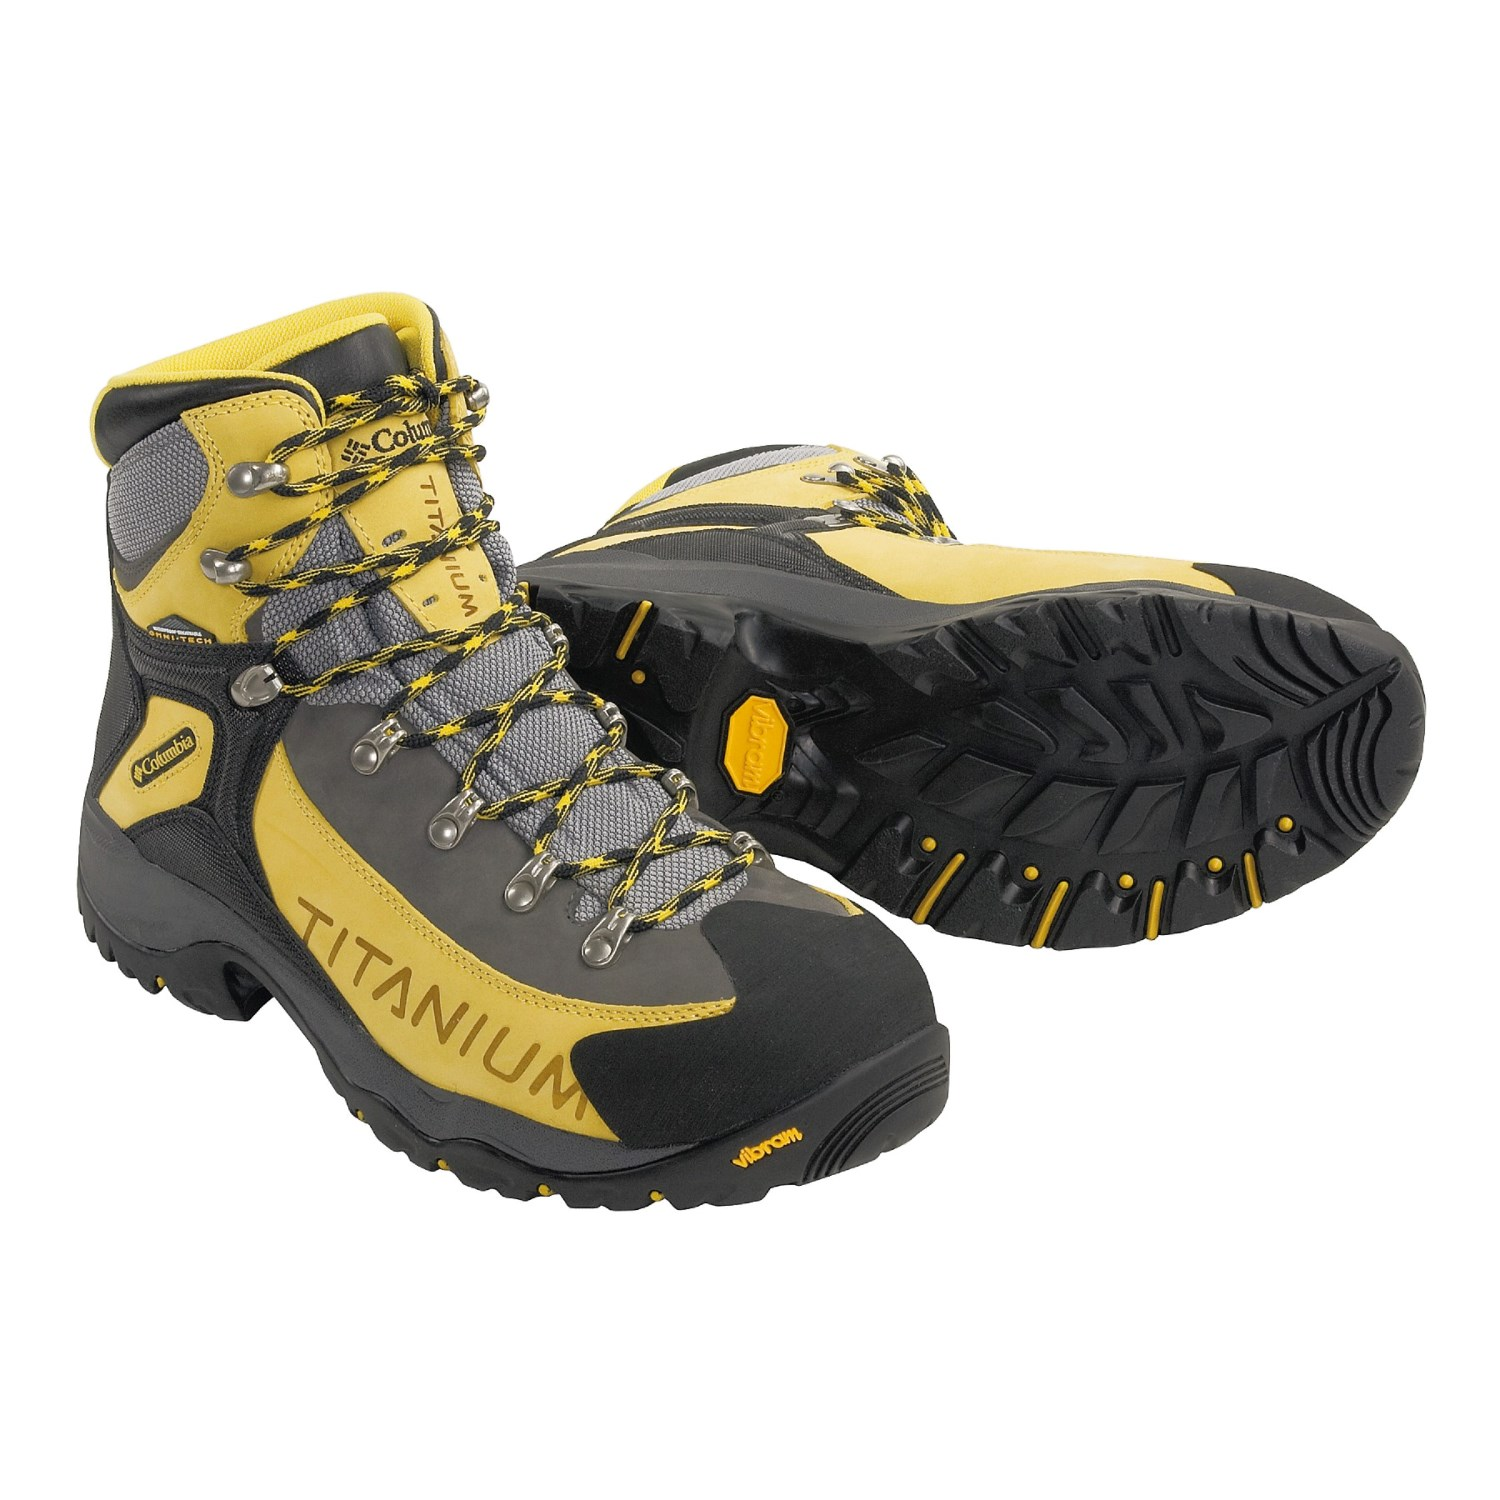 Columbia Footwear Daska Pass Hiking Boots For Men 1748t